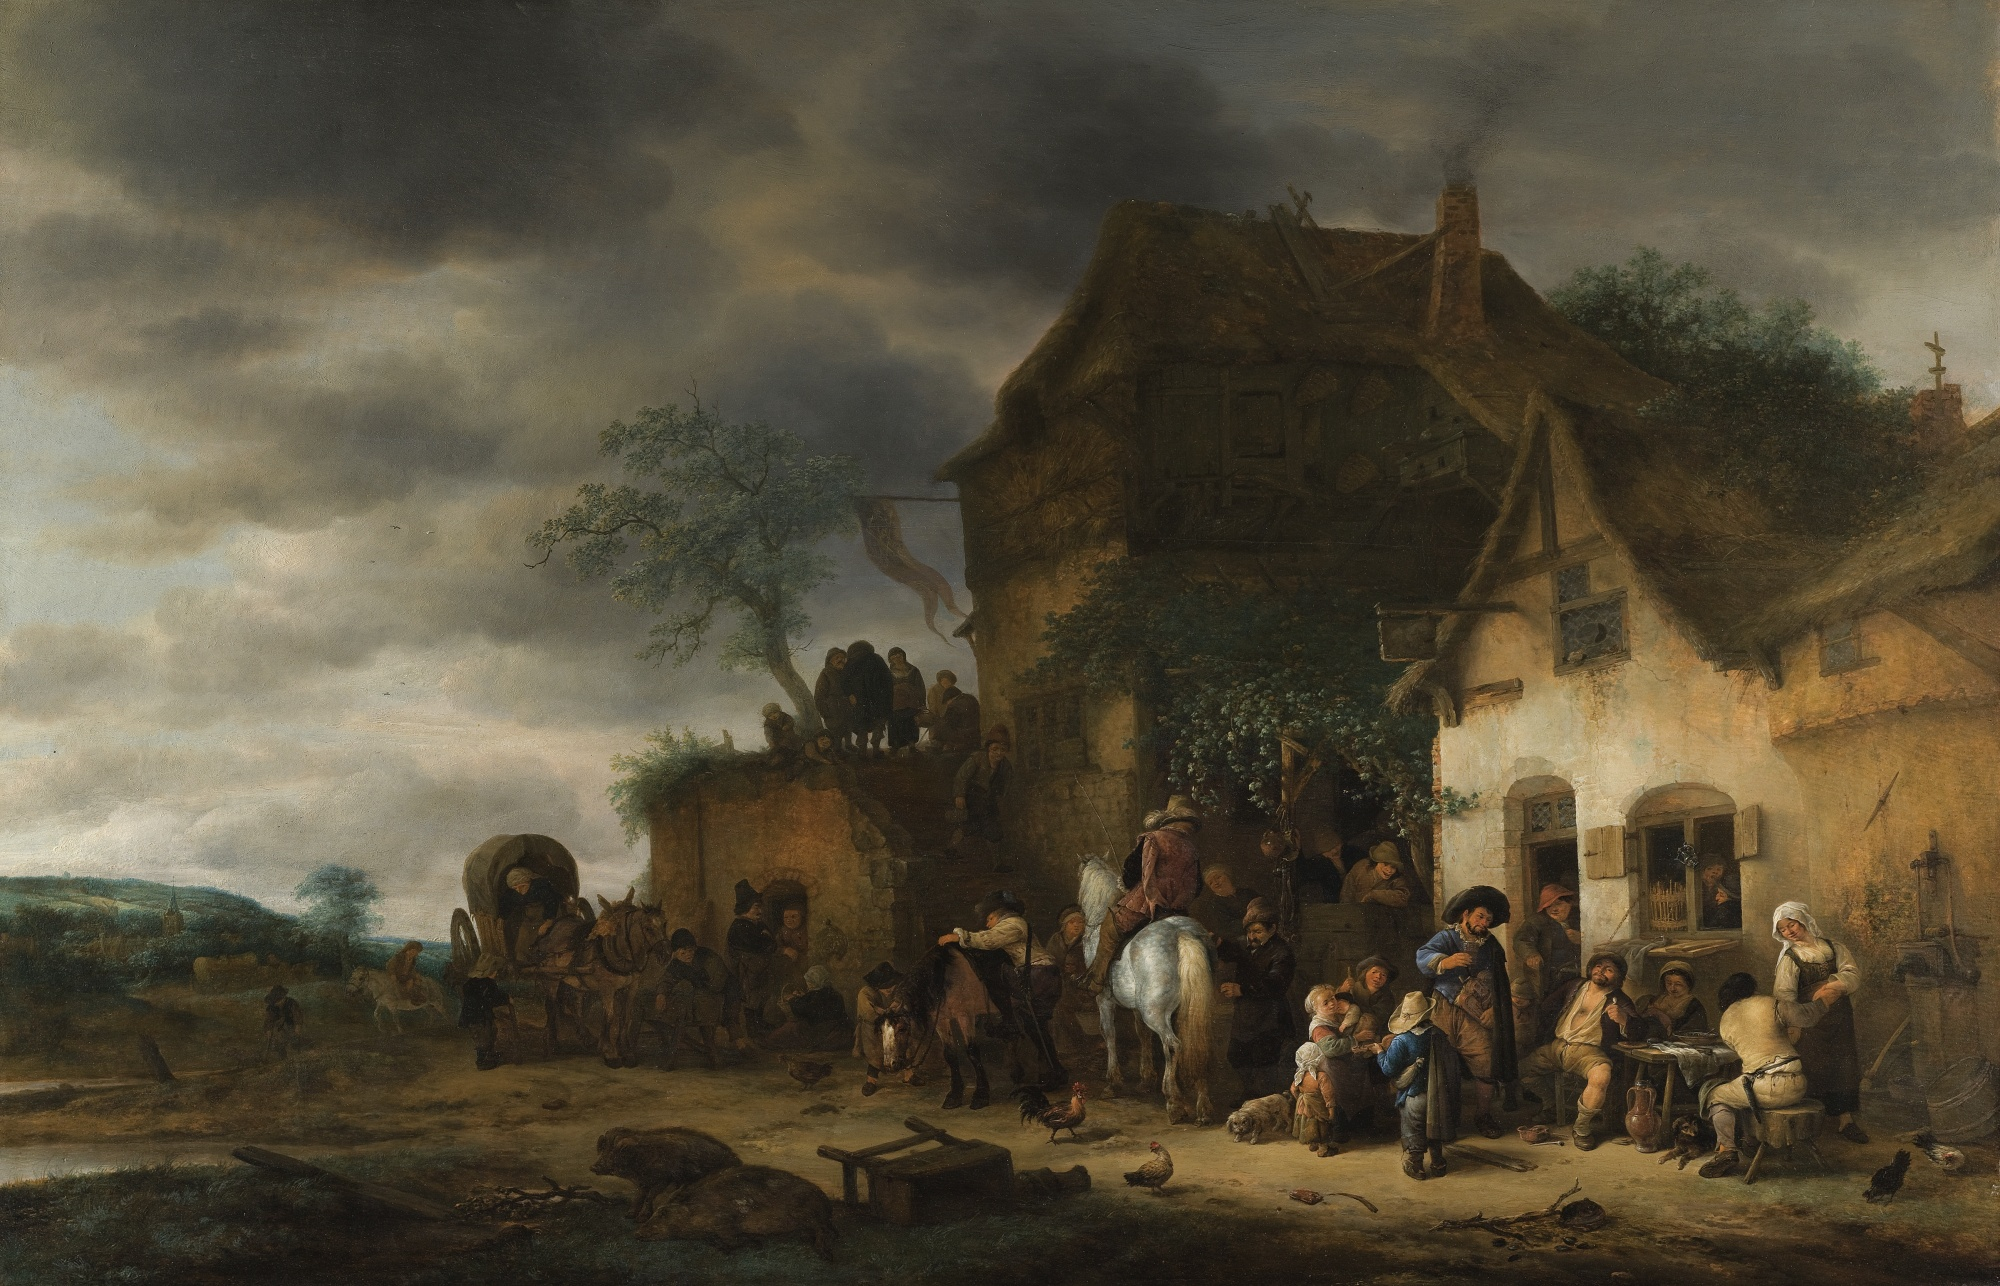 Travellers_Halted_at_a_Country_Inn__by_Adriaen_Jansz._van_Ostade_Haarlem_and_Isack_van_Ostade_Haarlem.jpg